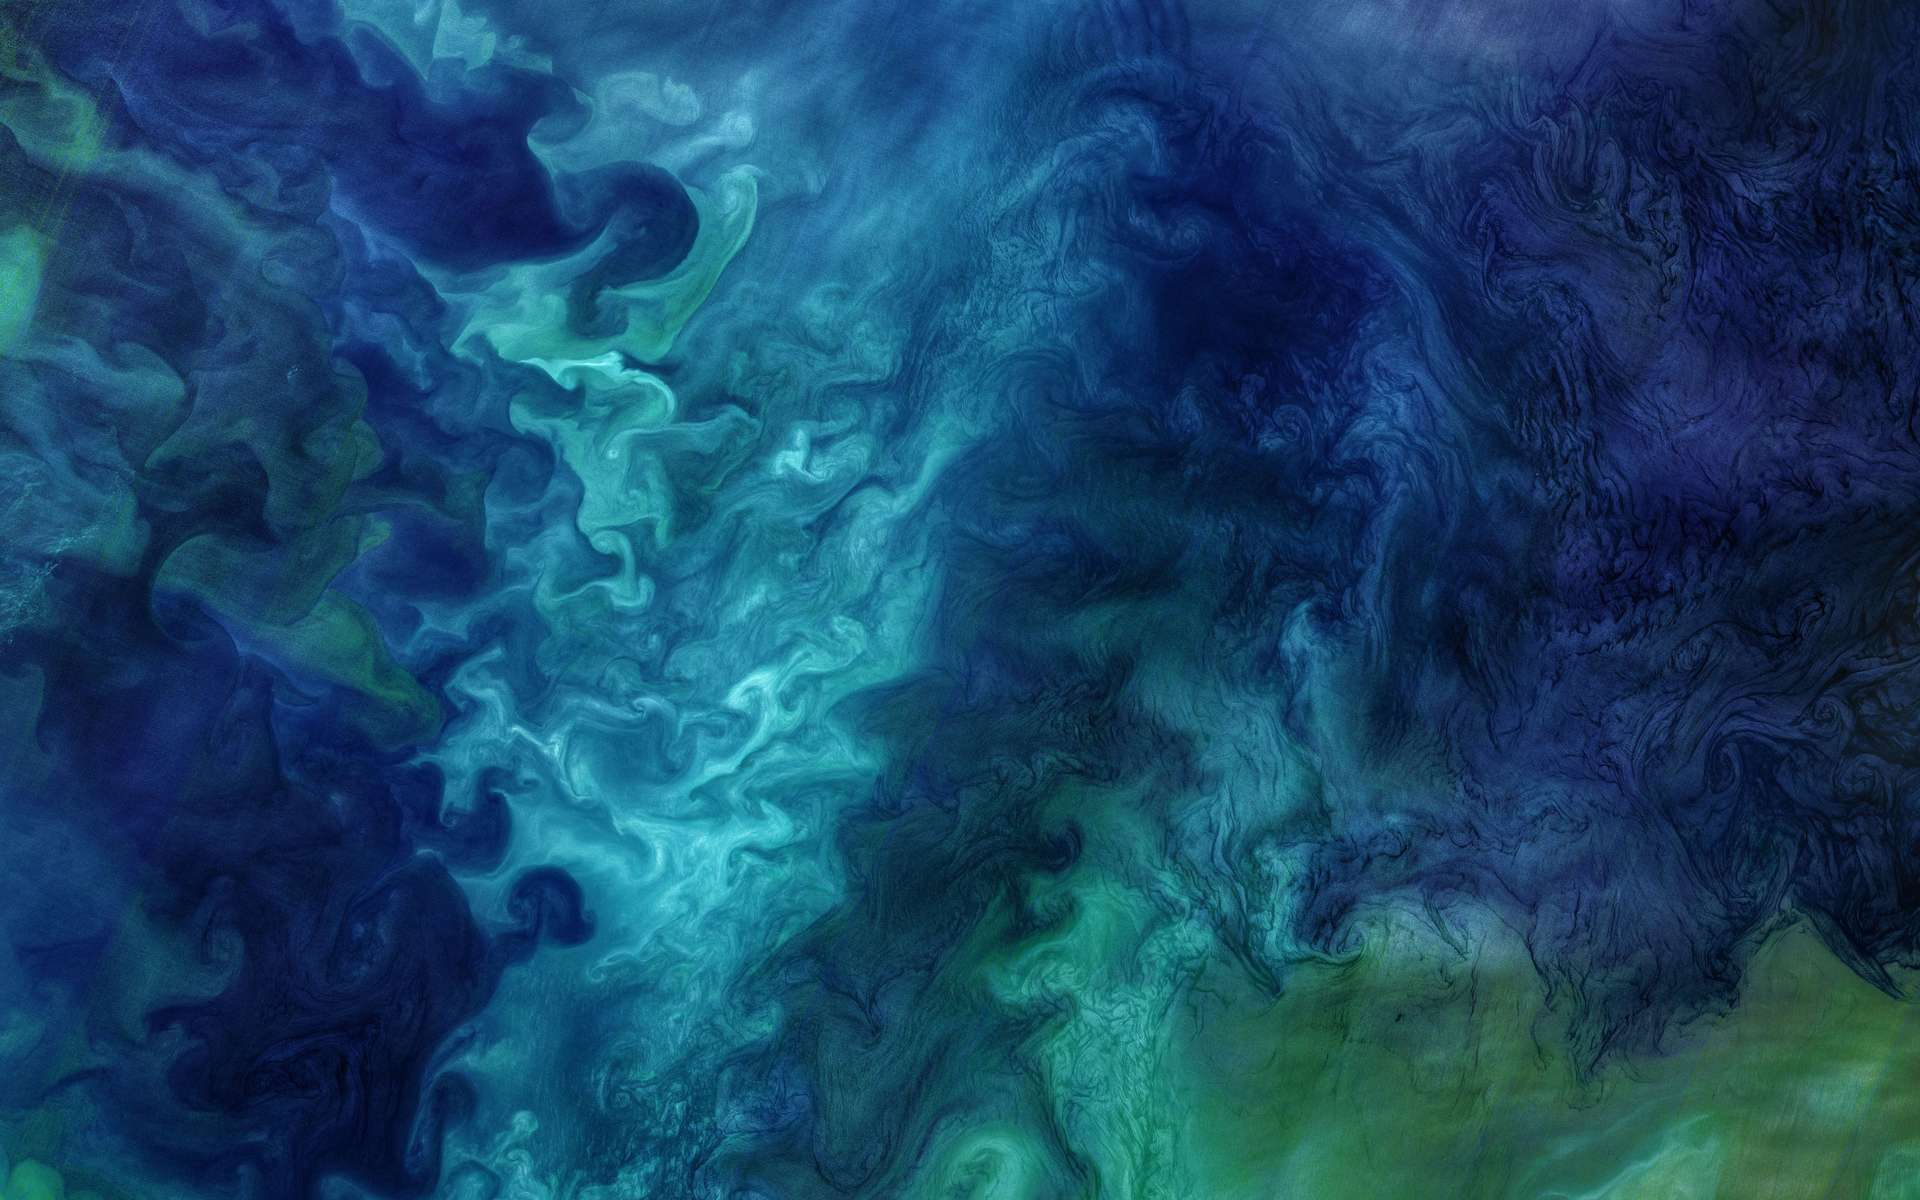 Efflorescence de phytoplancton dans la mer des Tchouktches. © Nasa's Marshall Space Flight Center